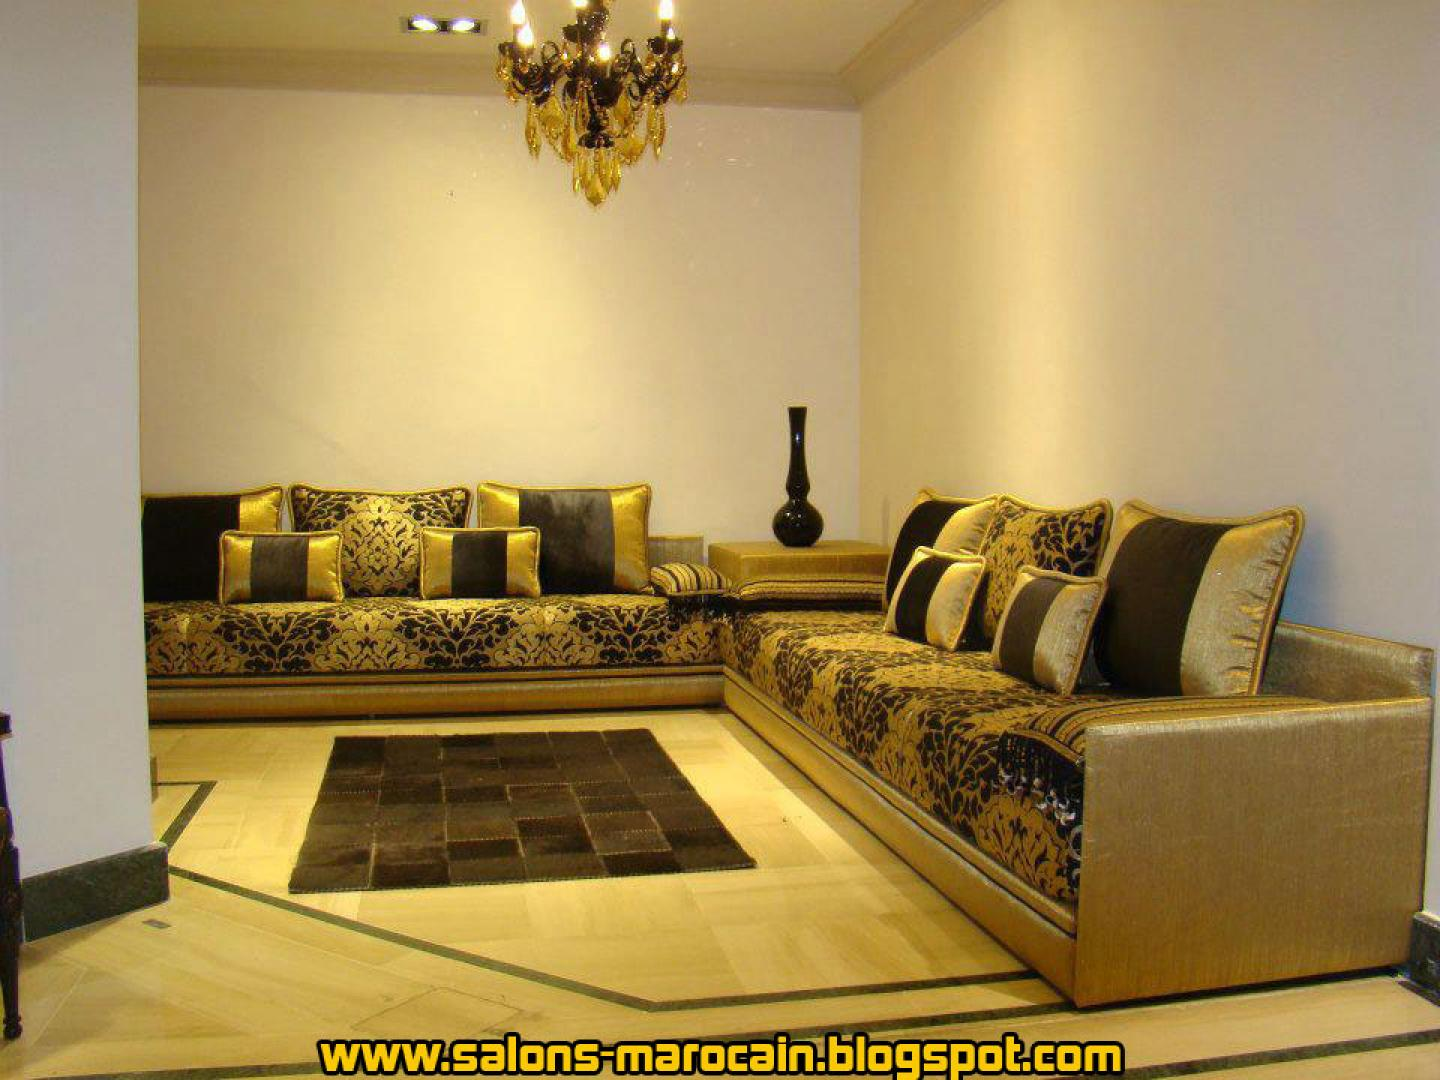 Deco salon marocain moderne for Decoration salon photo moderne